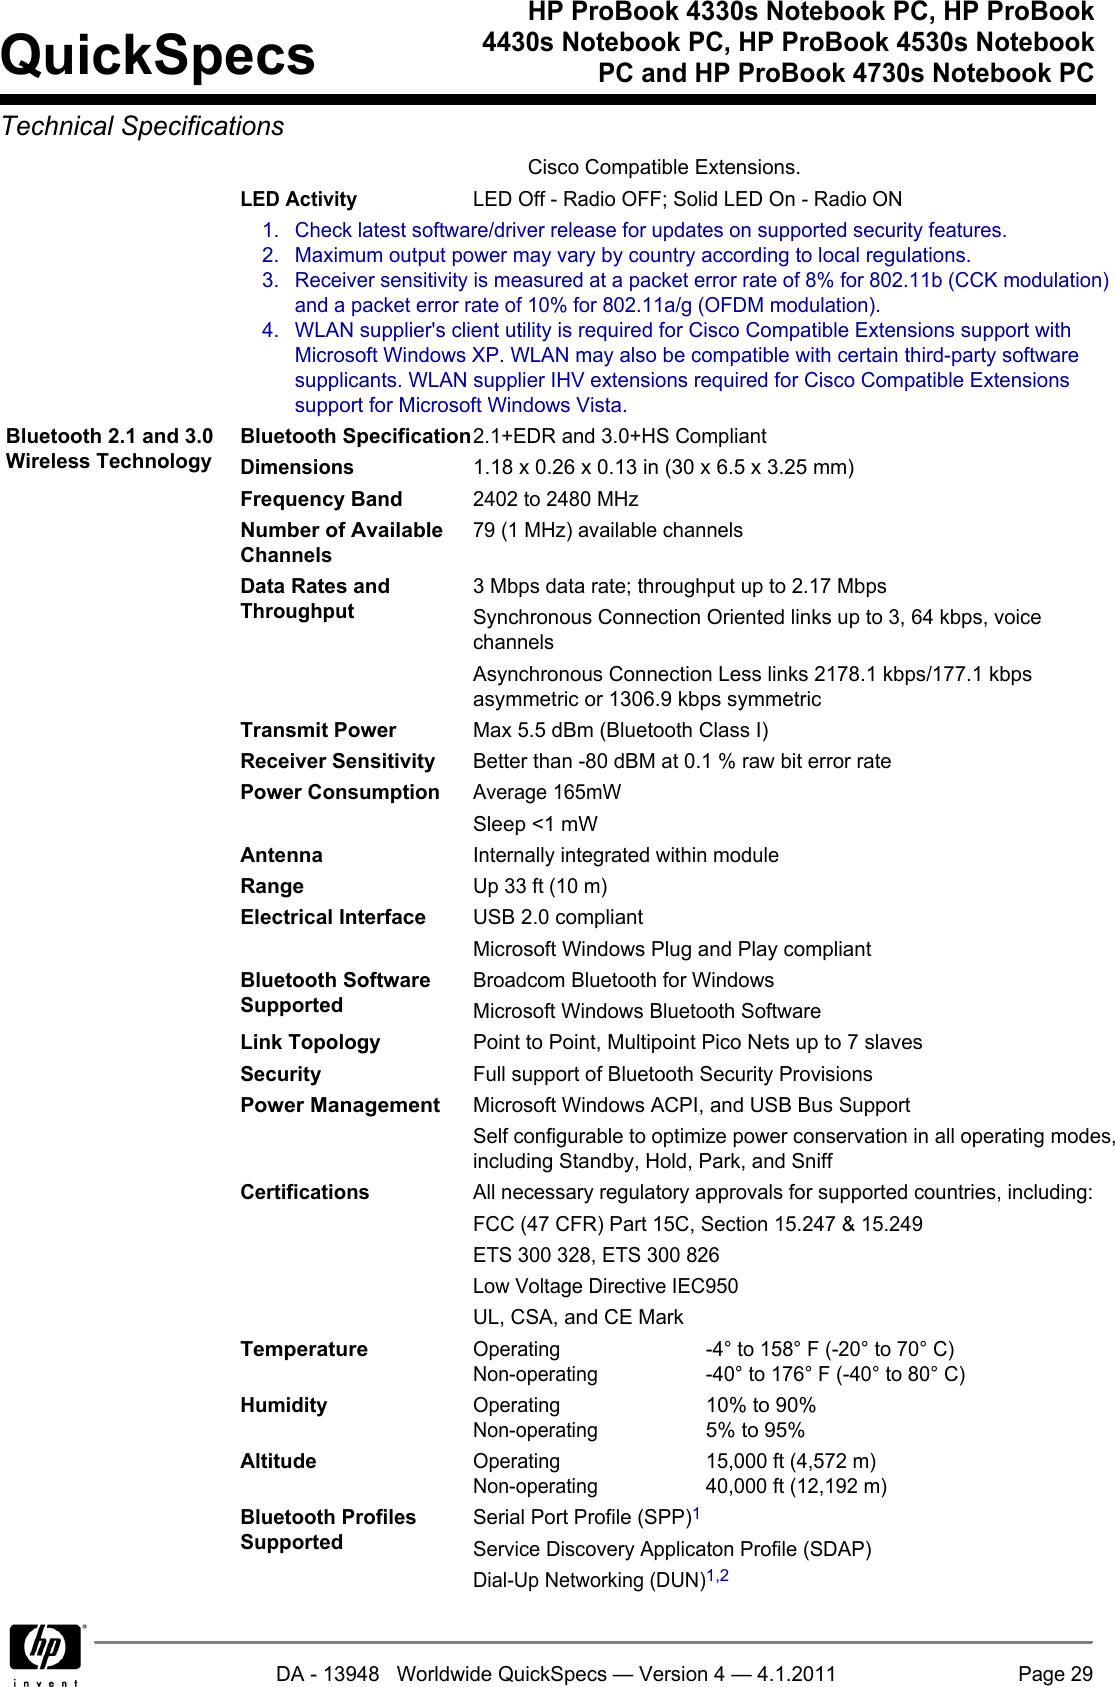 Hp 4330s Specifications